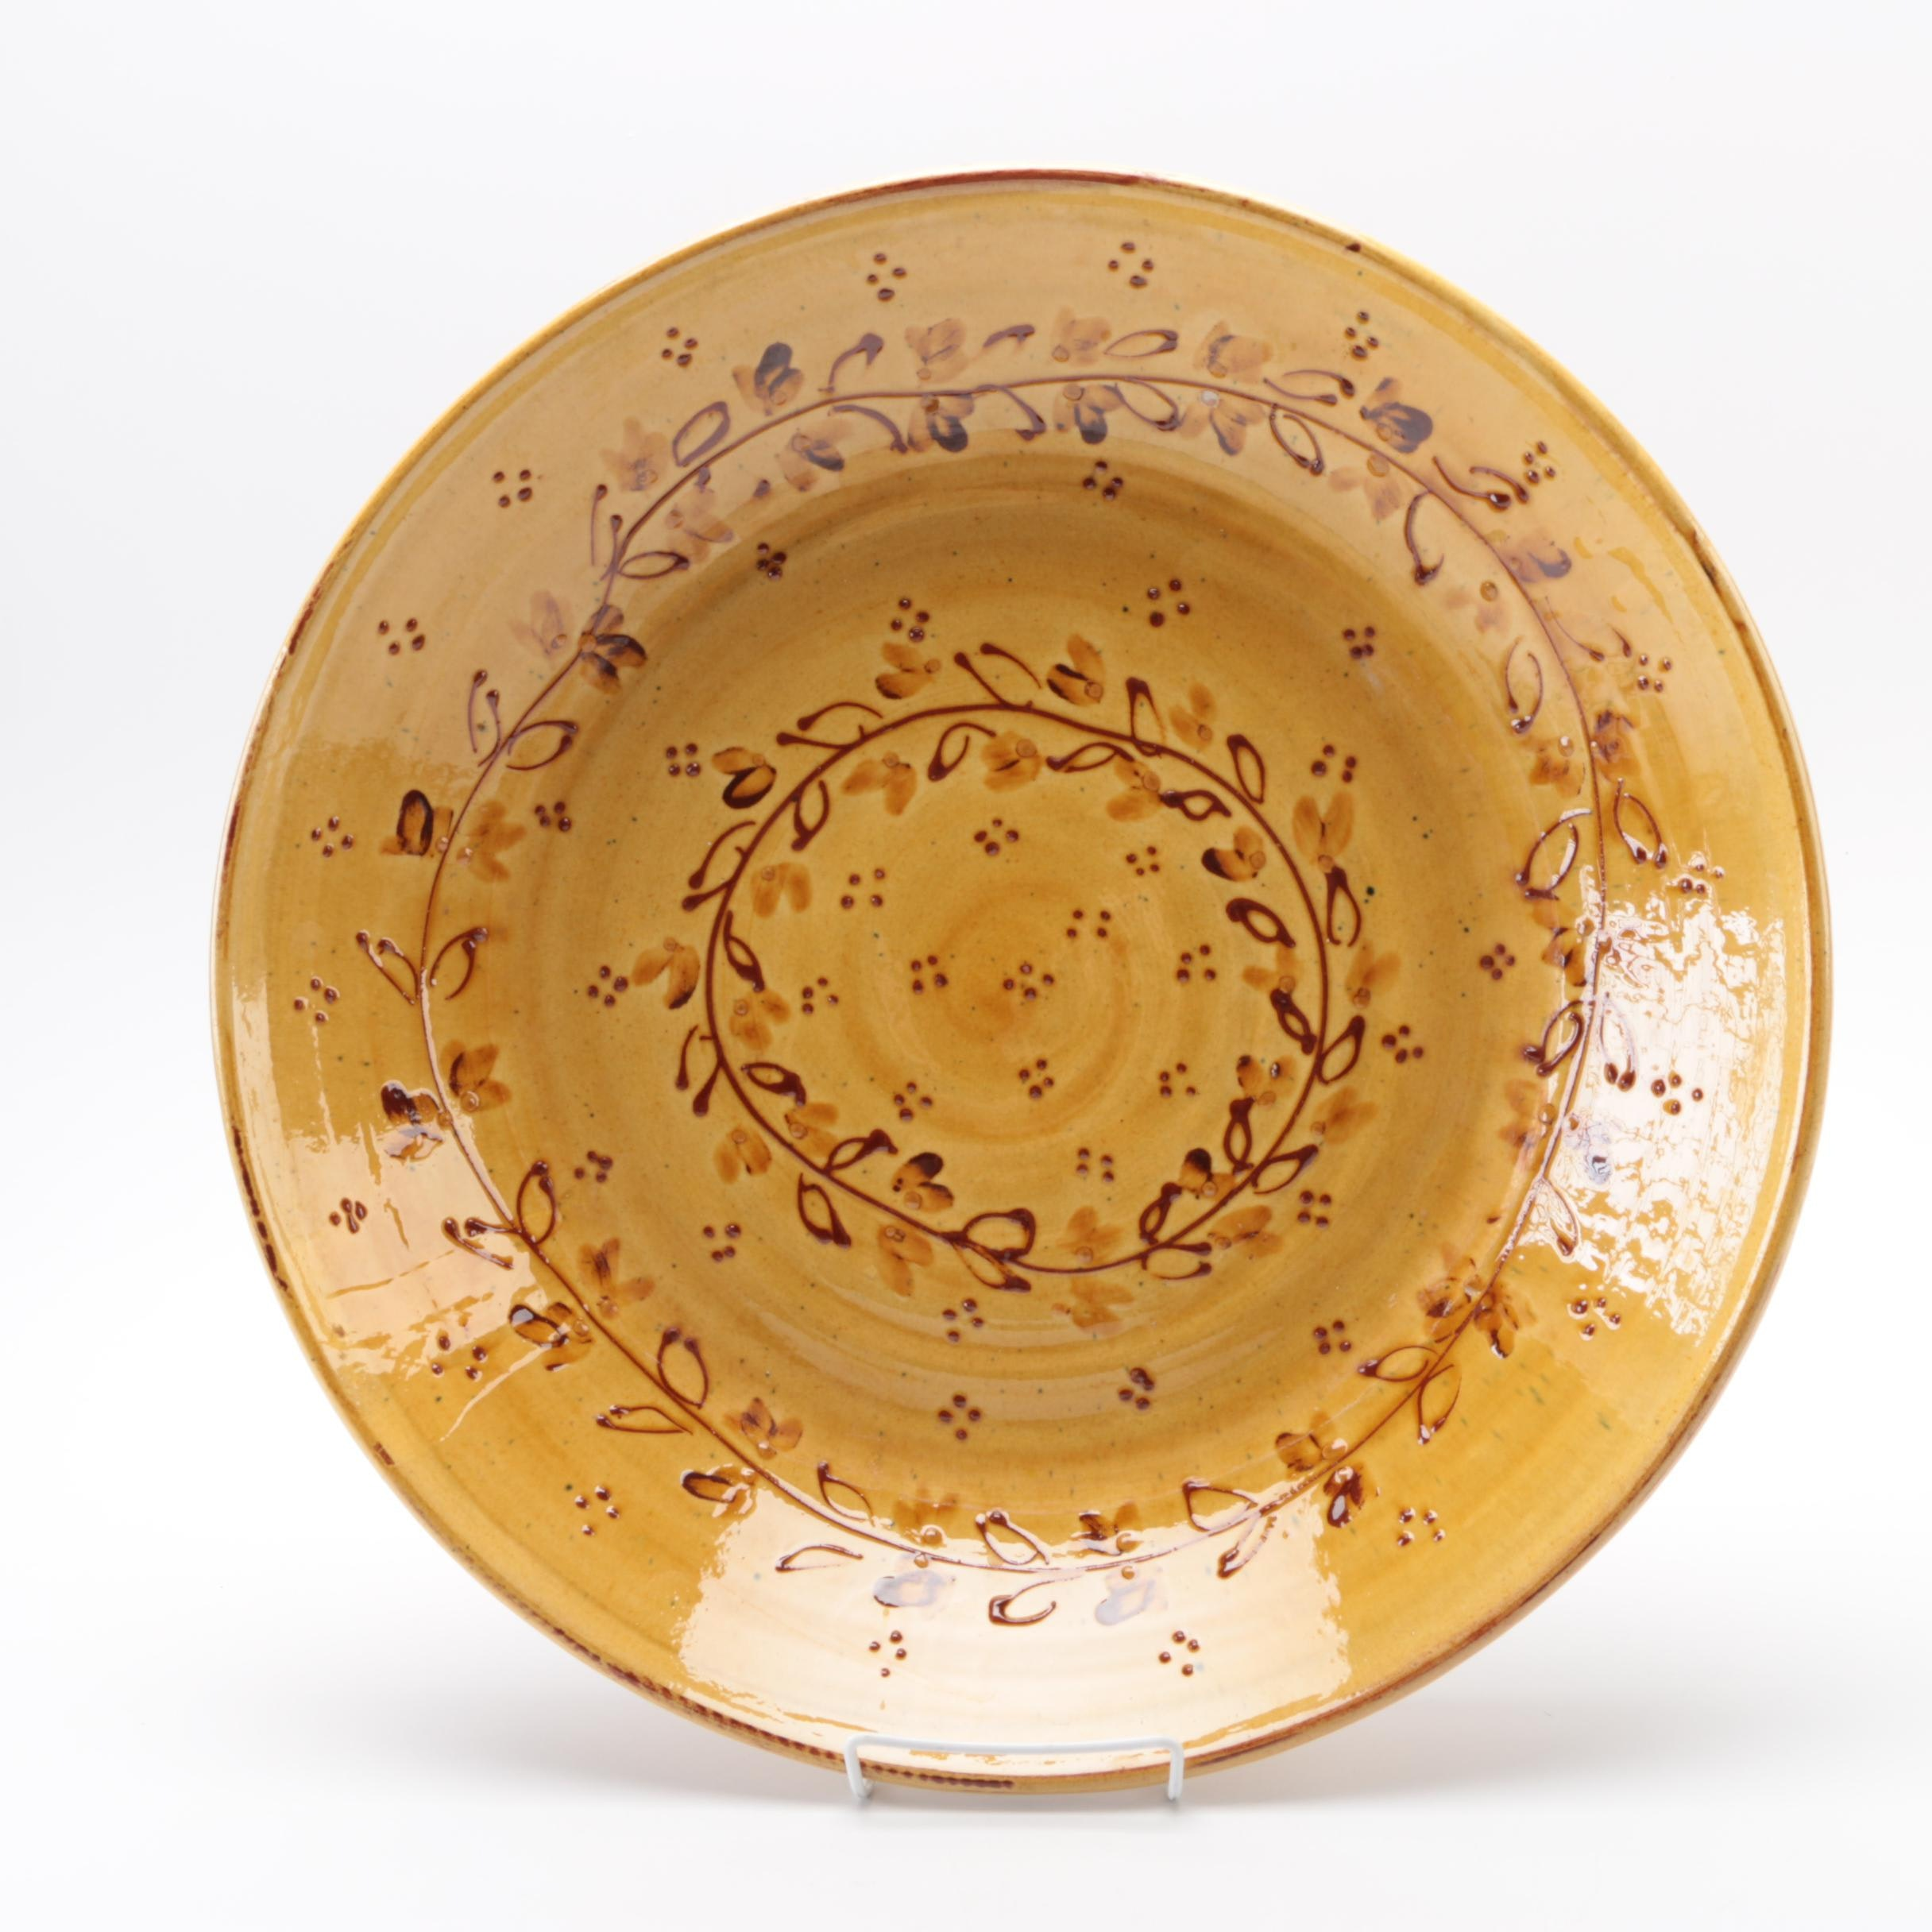 Rustic Hand-Painted French Terracotta Bowl